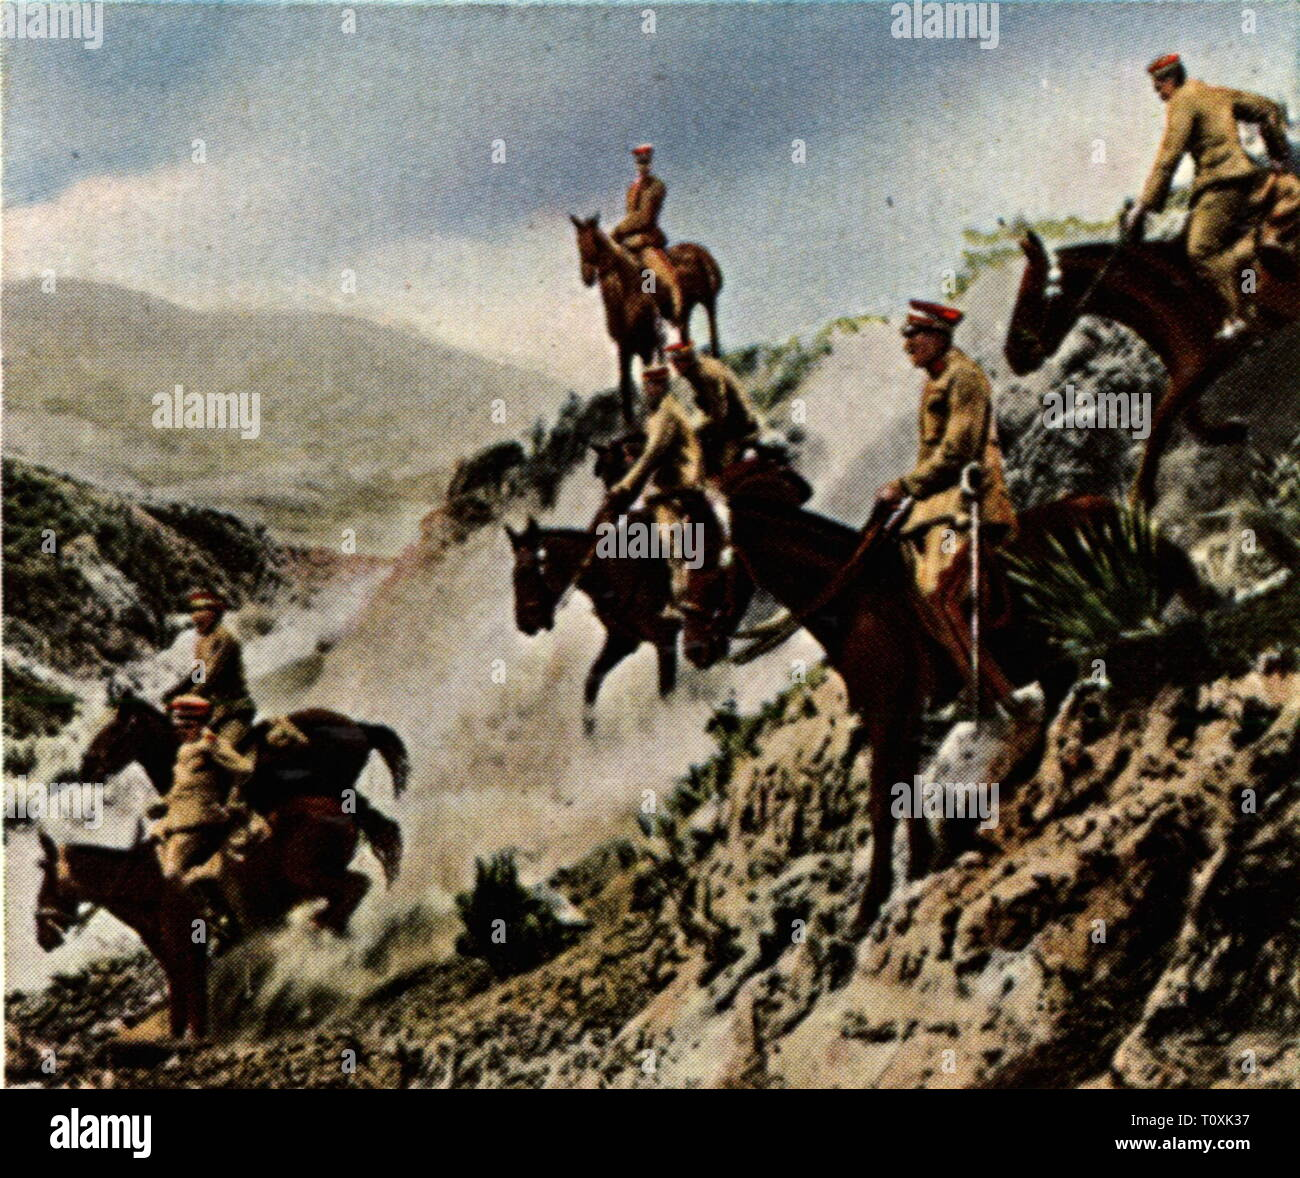 military, Bolivia, army, cavalry, patrol in the Gran Chaco, 1929, coloured photograph, cigarette card, series 'Die Nachkriegszeit', 1935, borderland to Paraguay, debatable territory, horseman, horsemen, cavalryman, cavalrymen, horse, horses, South America, armed forces, soldiers, soldier, people, 1920s, 20th century, army, armies, cavalry, cavalries, patrol, patrols, coloured, colored, post war period, post-war period, post-war years, post-war era, historic, historical, Additional-Rights-Clearance-Info-Not-Available - Stock Image